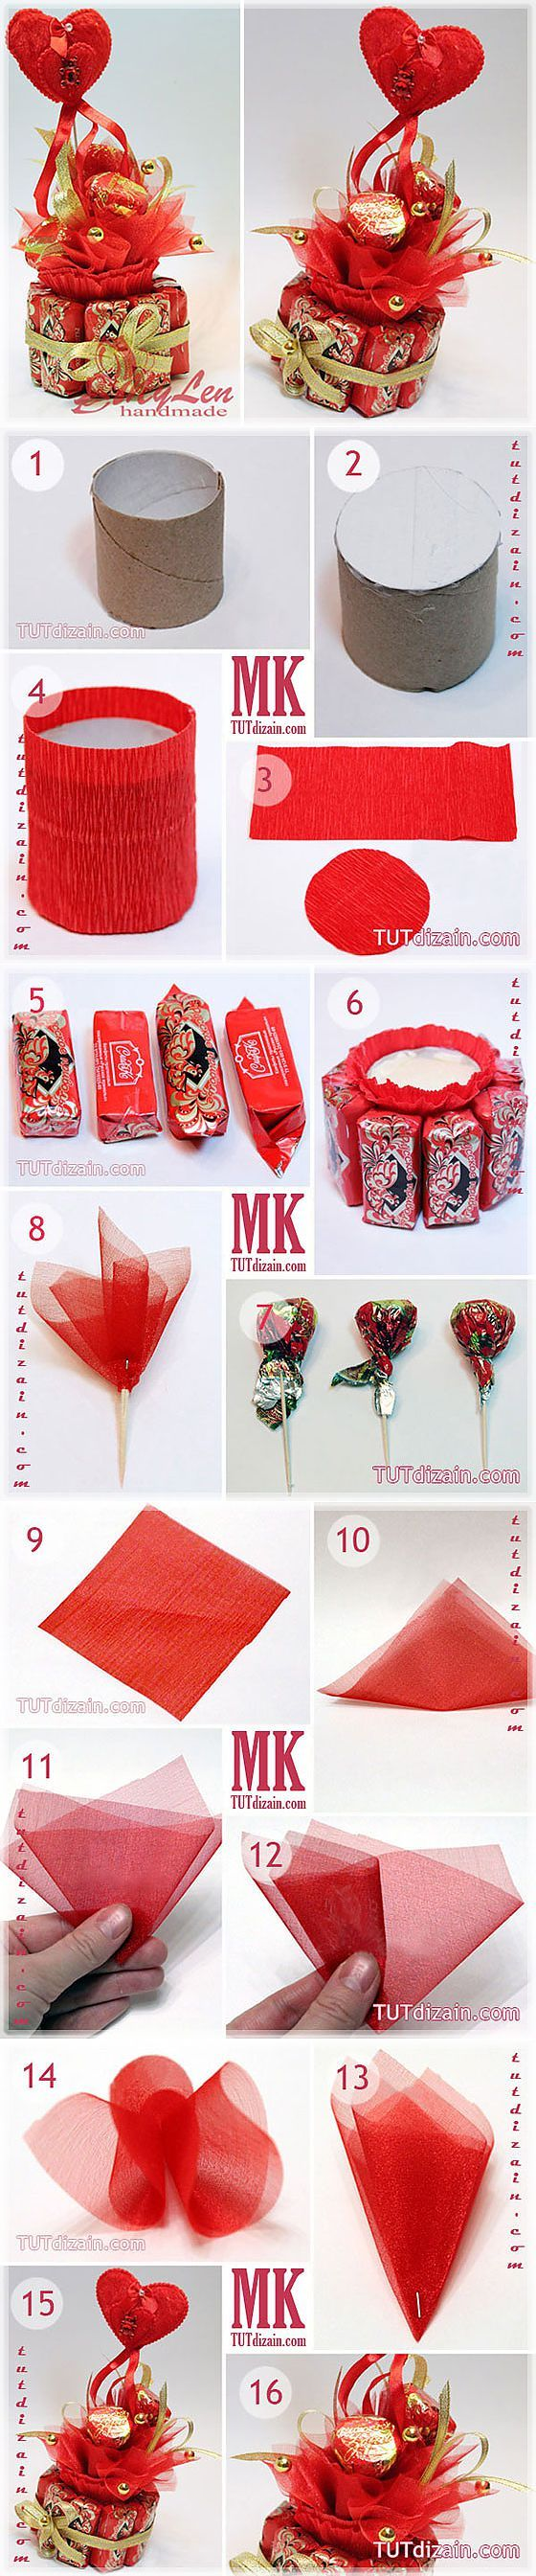 Crepe paper, tulle, cardboard tube w/ styrofoam, & skewer sticks; ribbon & beads or sequins for embellishments.